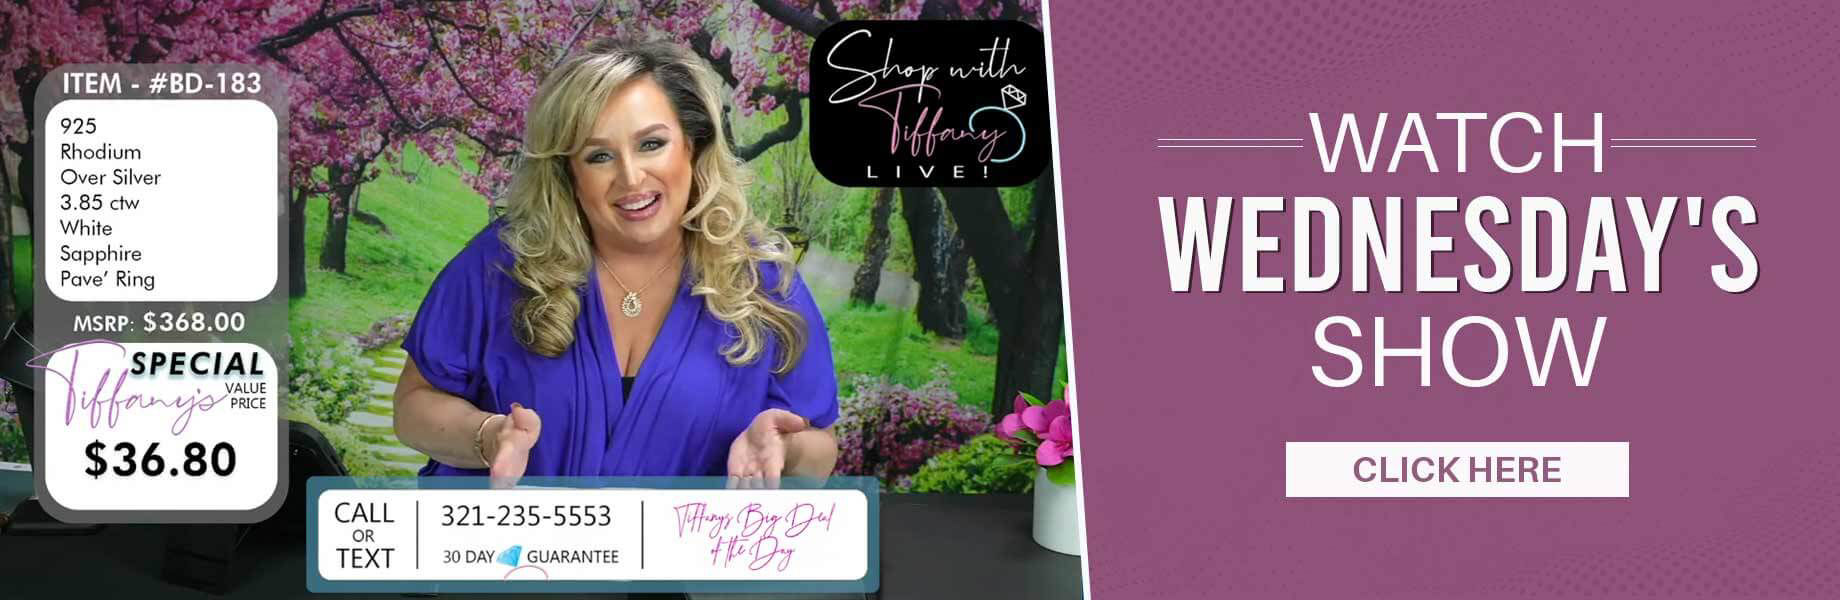 Shop With Tiffany Live at Avalon Park Jewelers